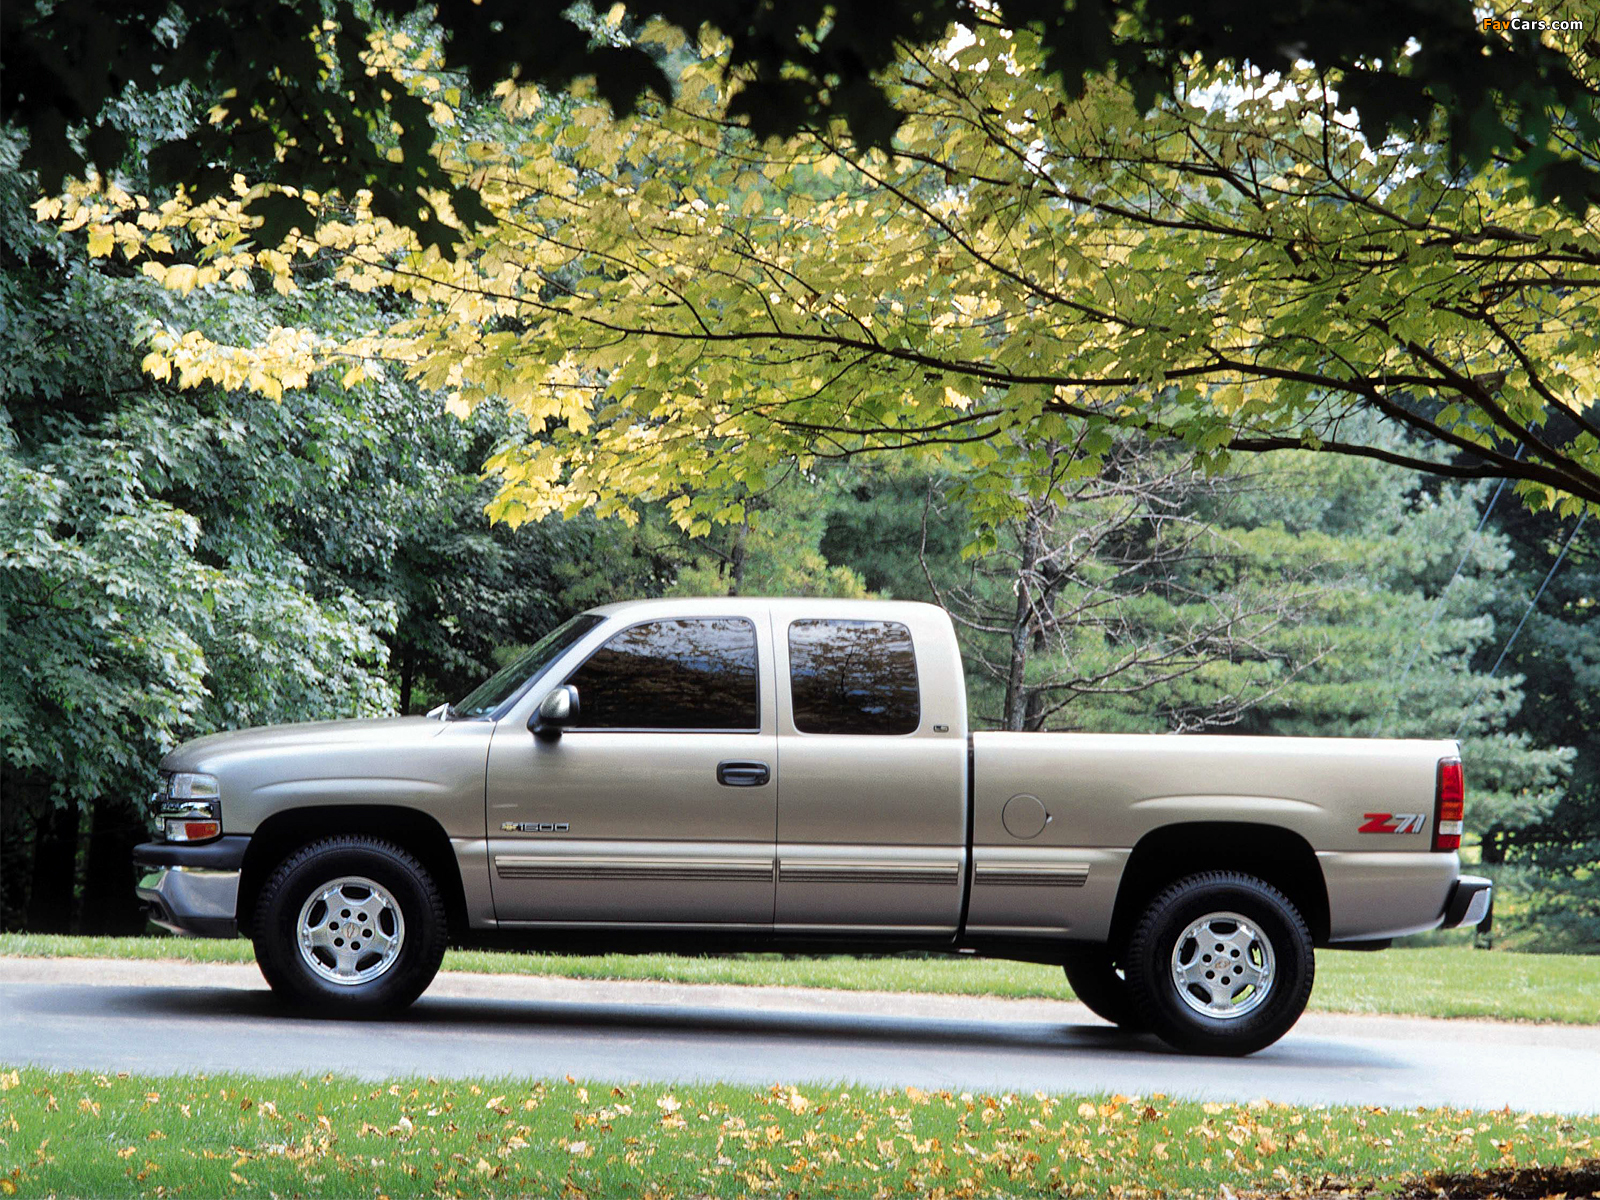 pictures of chevrolet silverado z71 extended cab 1999 2002 1600x1200